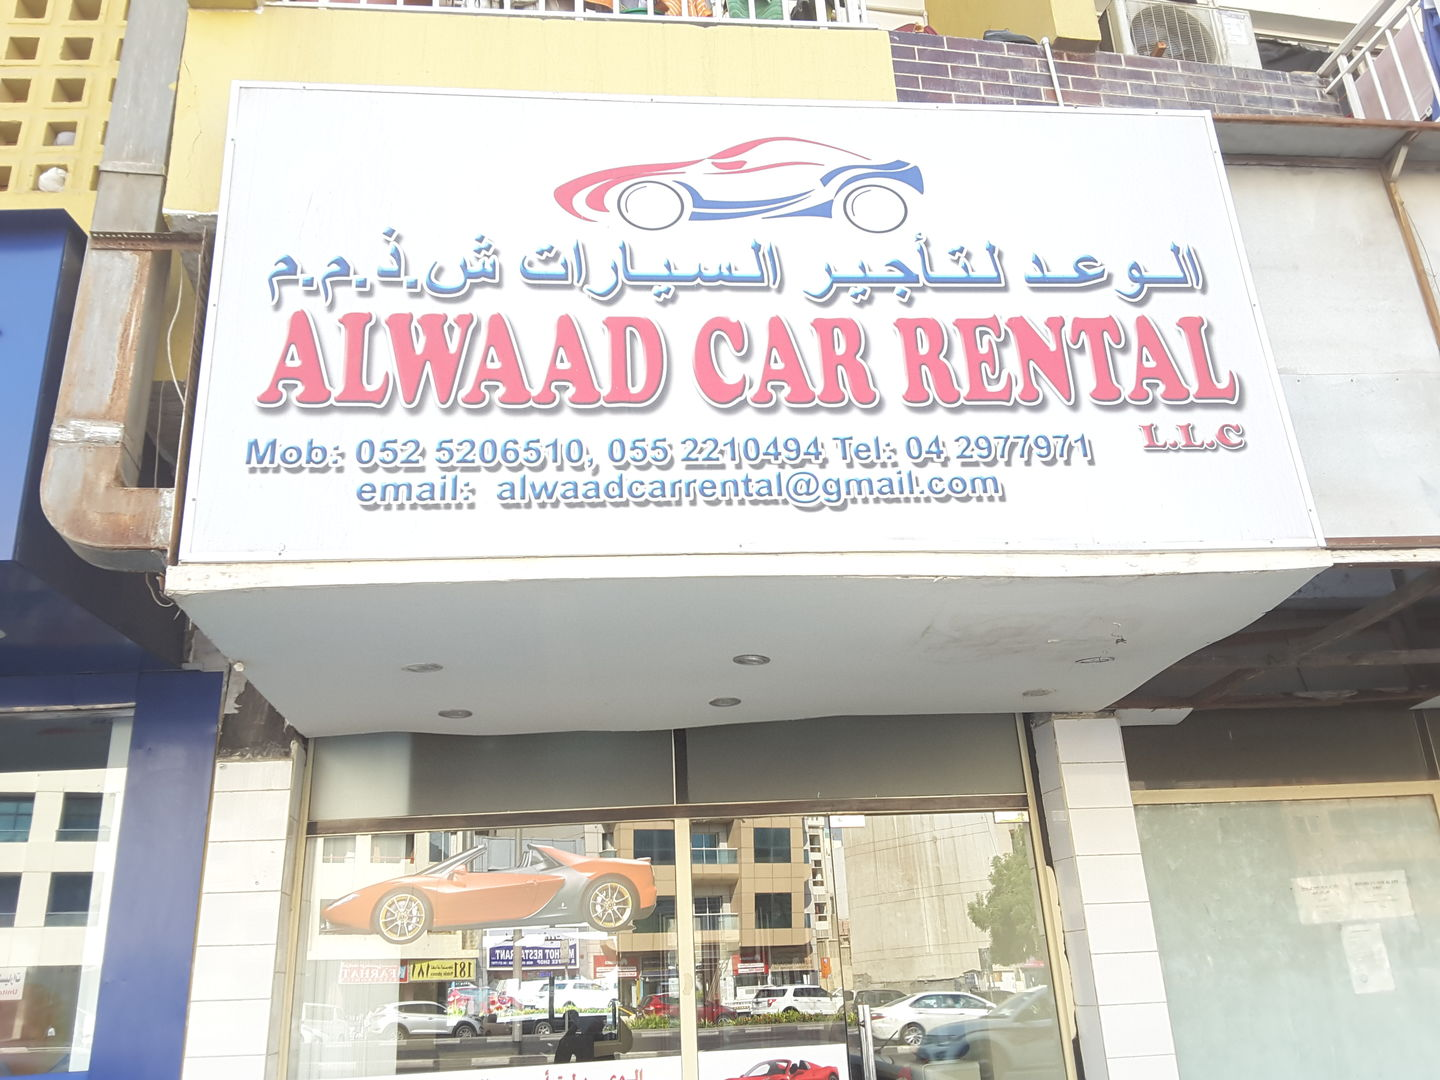 HiDubai-business-al-waad-car-rental-transport-vehicle-services-car-rental-services-al-murar-dubai-2